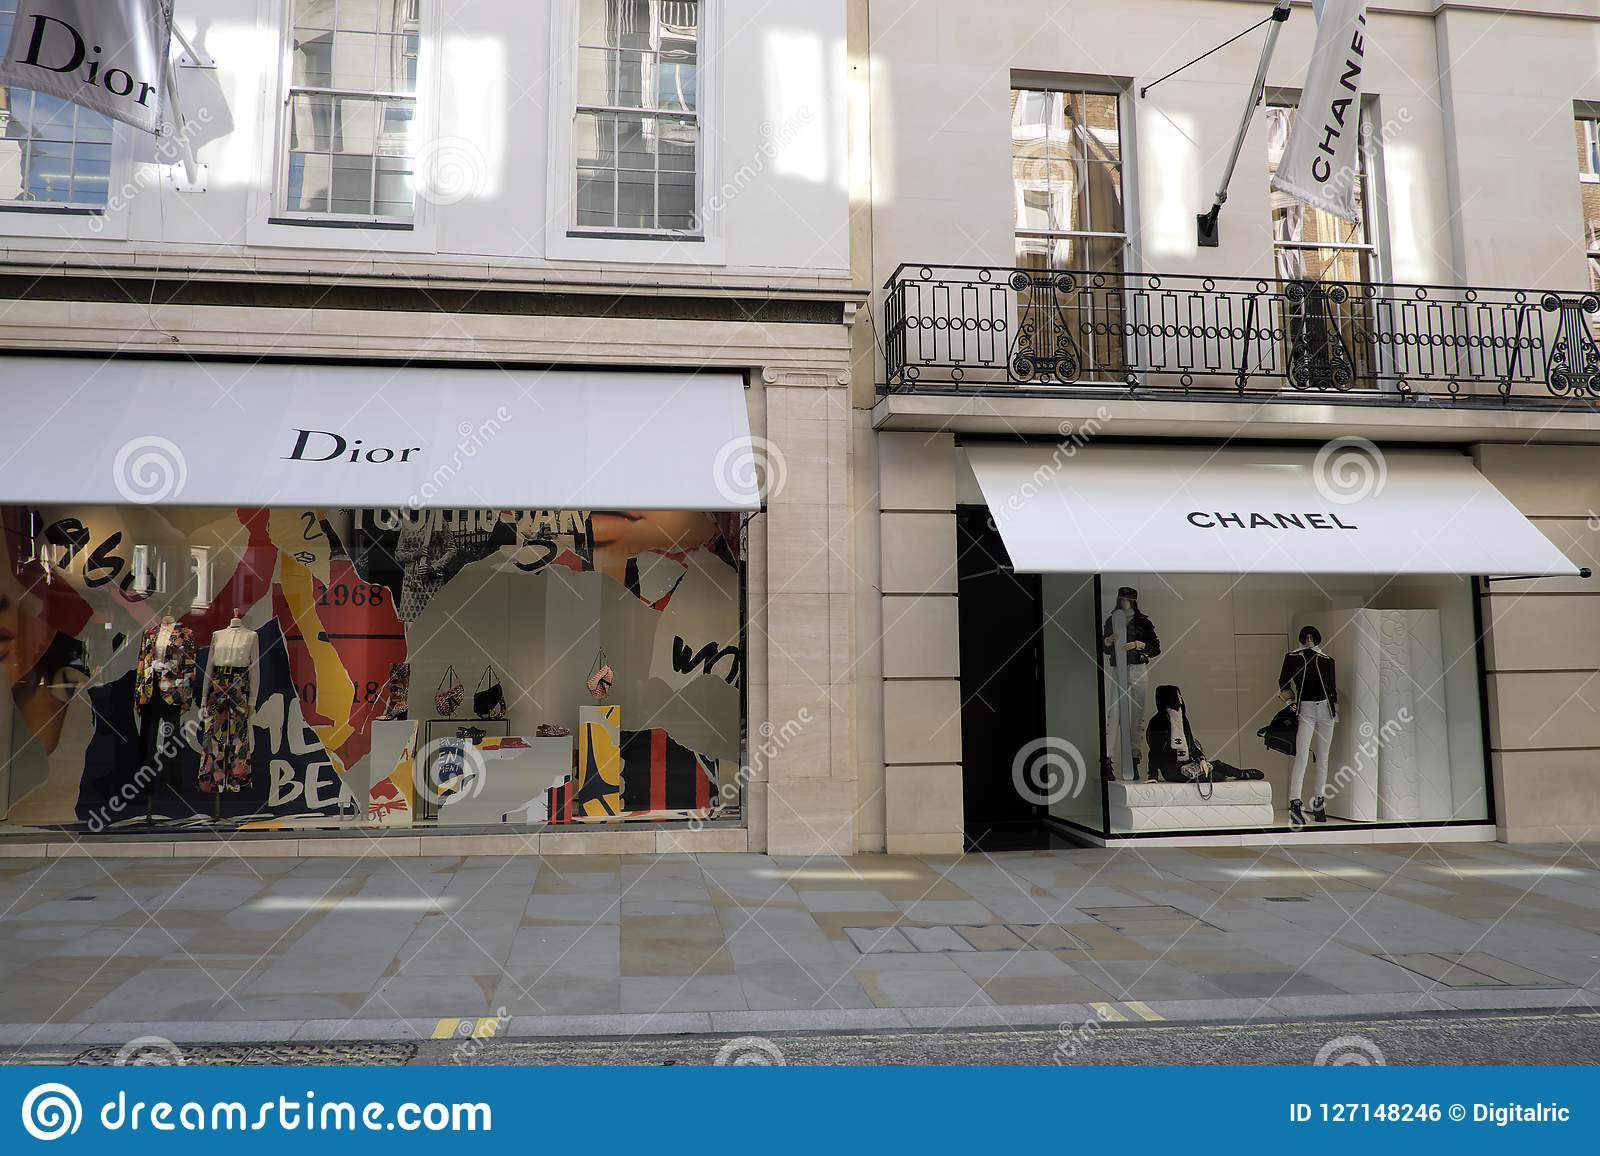 516c57cb4a9 Luxury Fashion Dior And Chanel Editorial Photo - Image of flagship ...